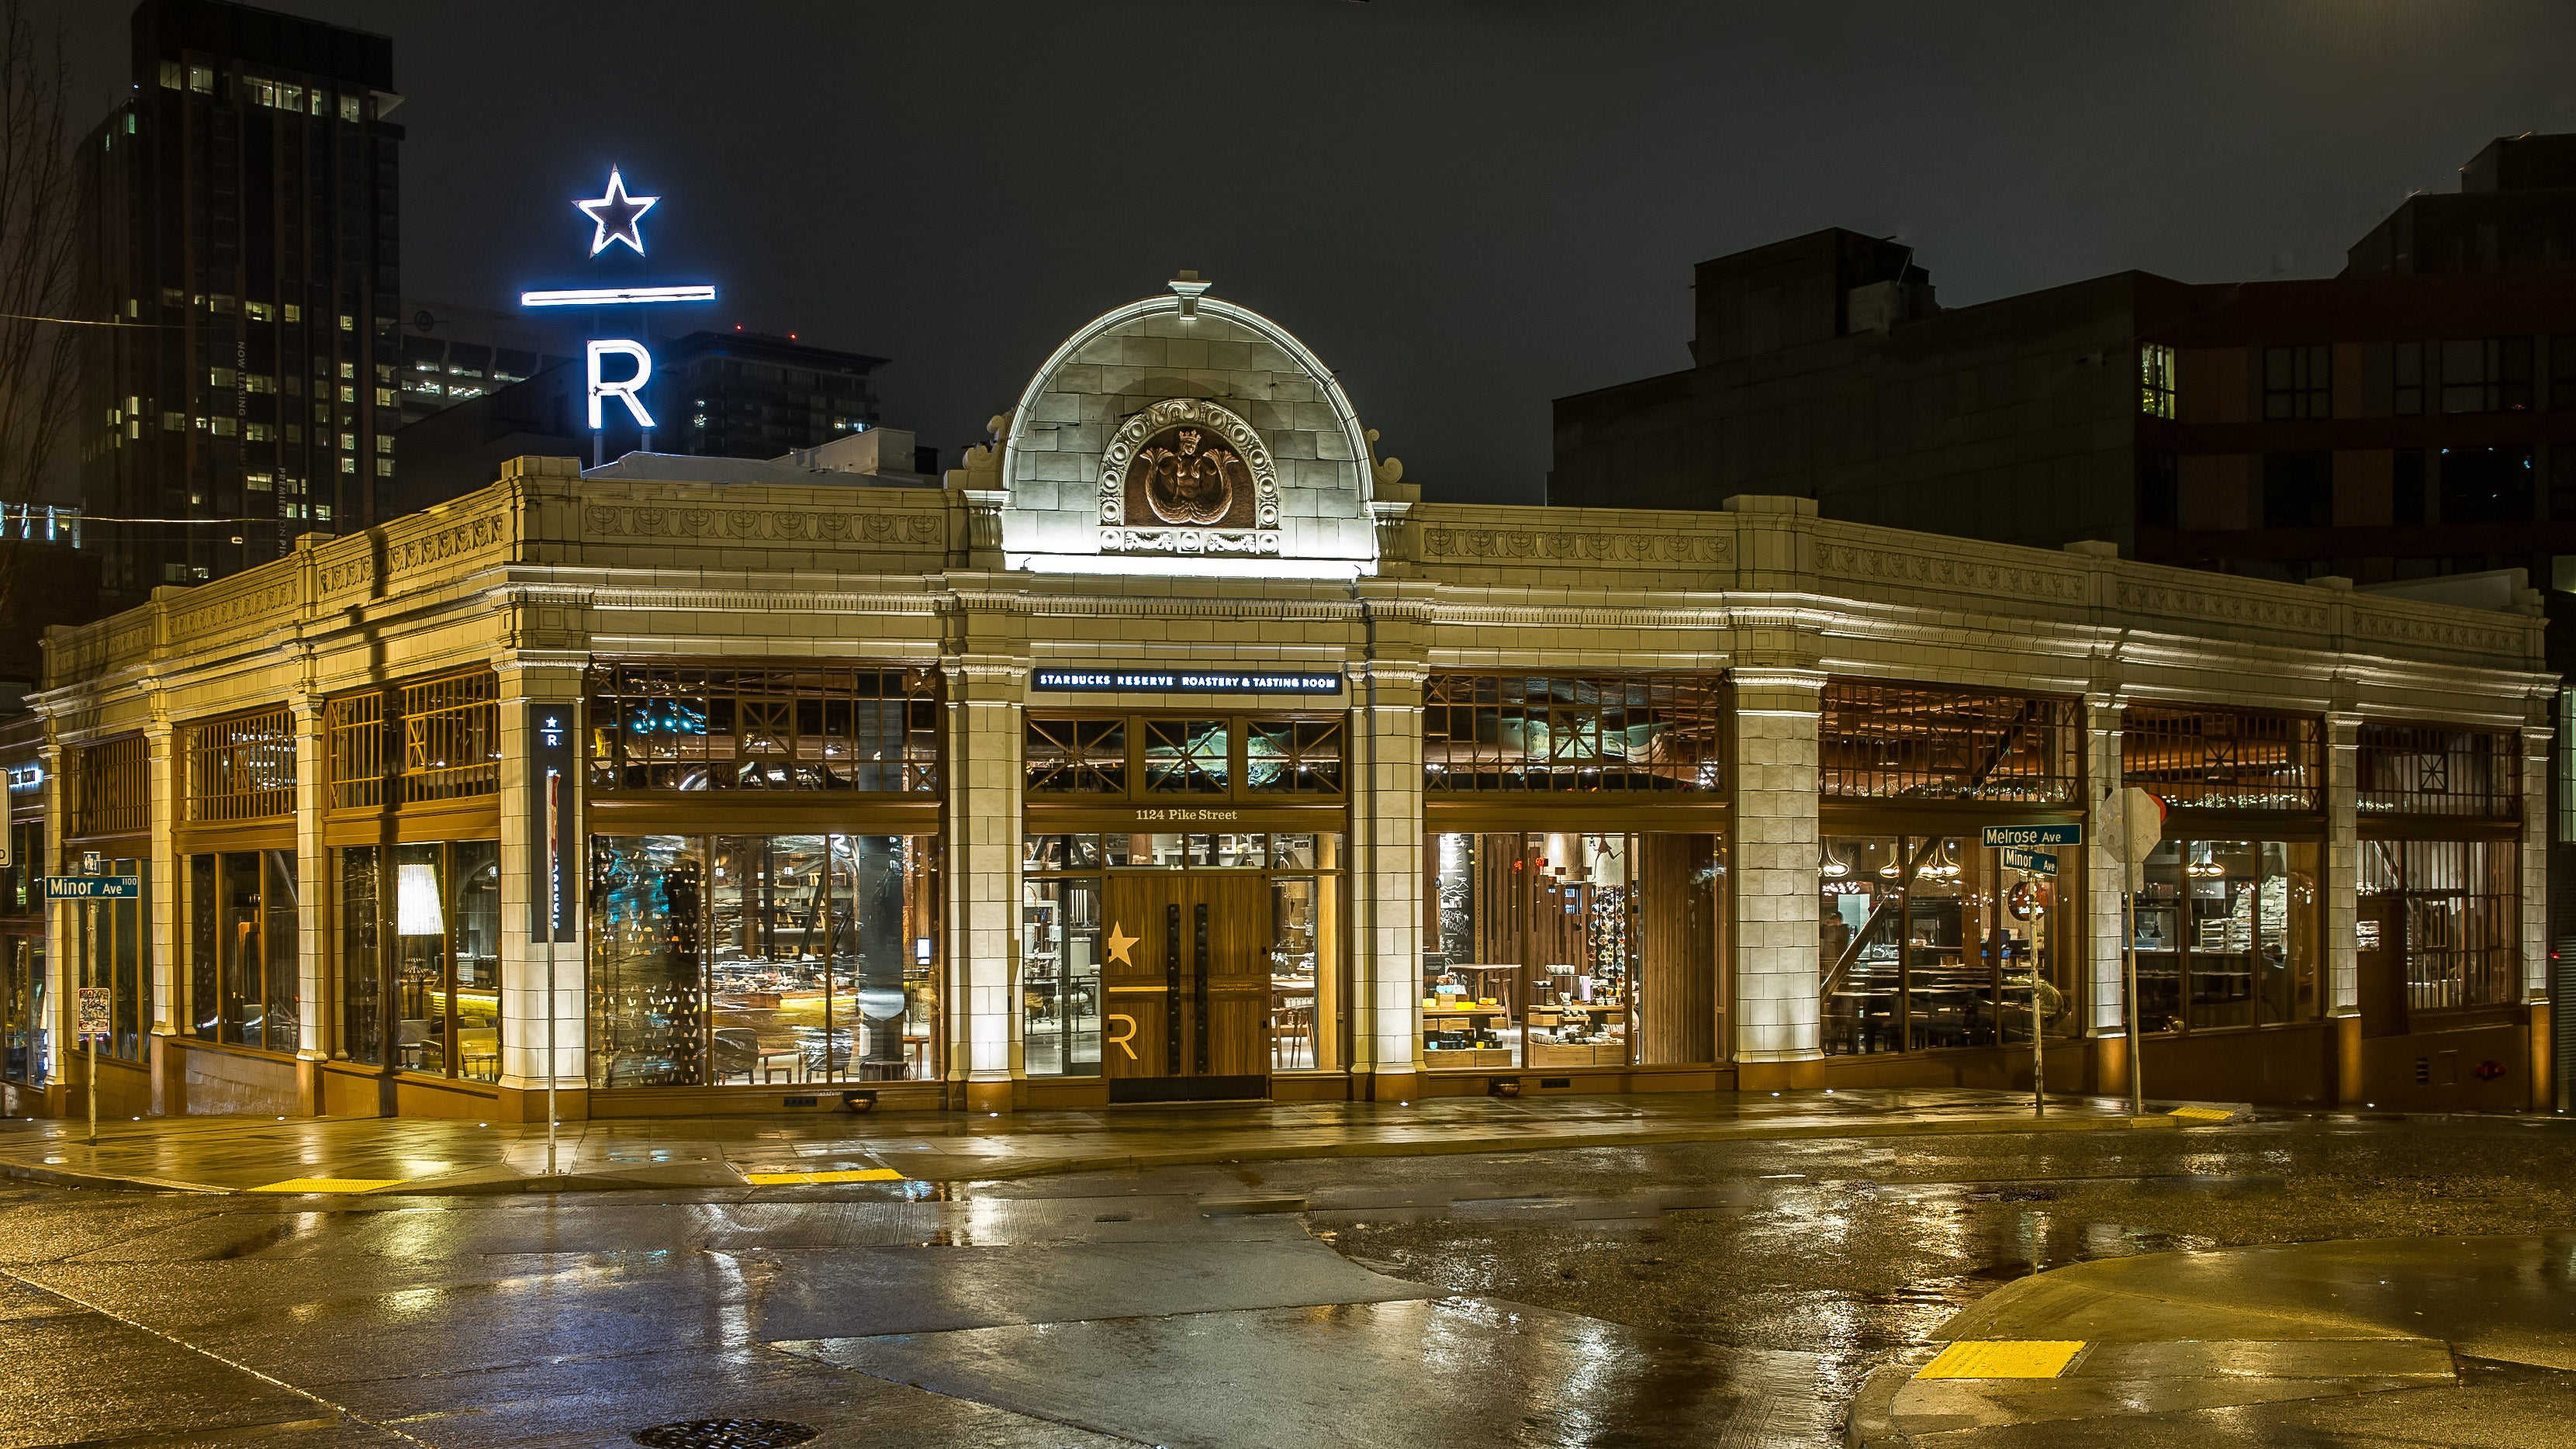 Starbucks Opens Its Second Roastery As It Aims To Move